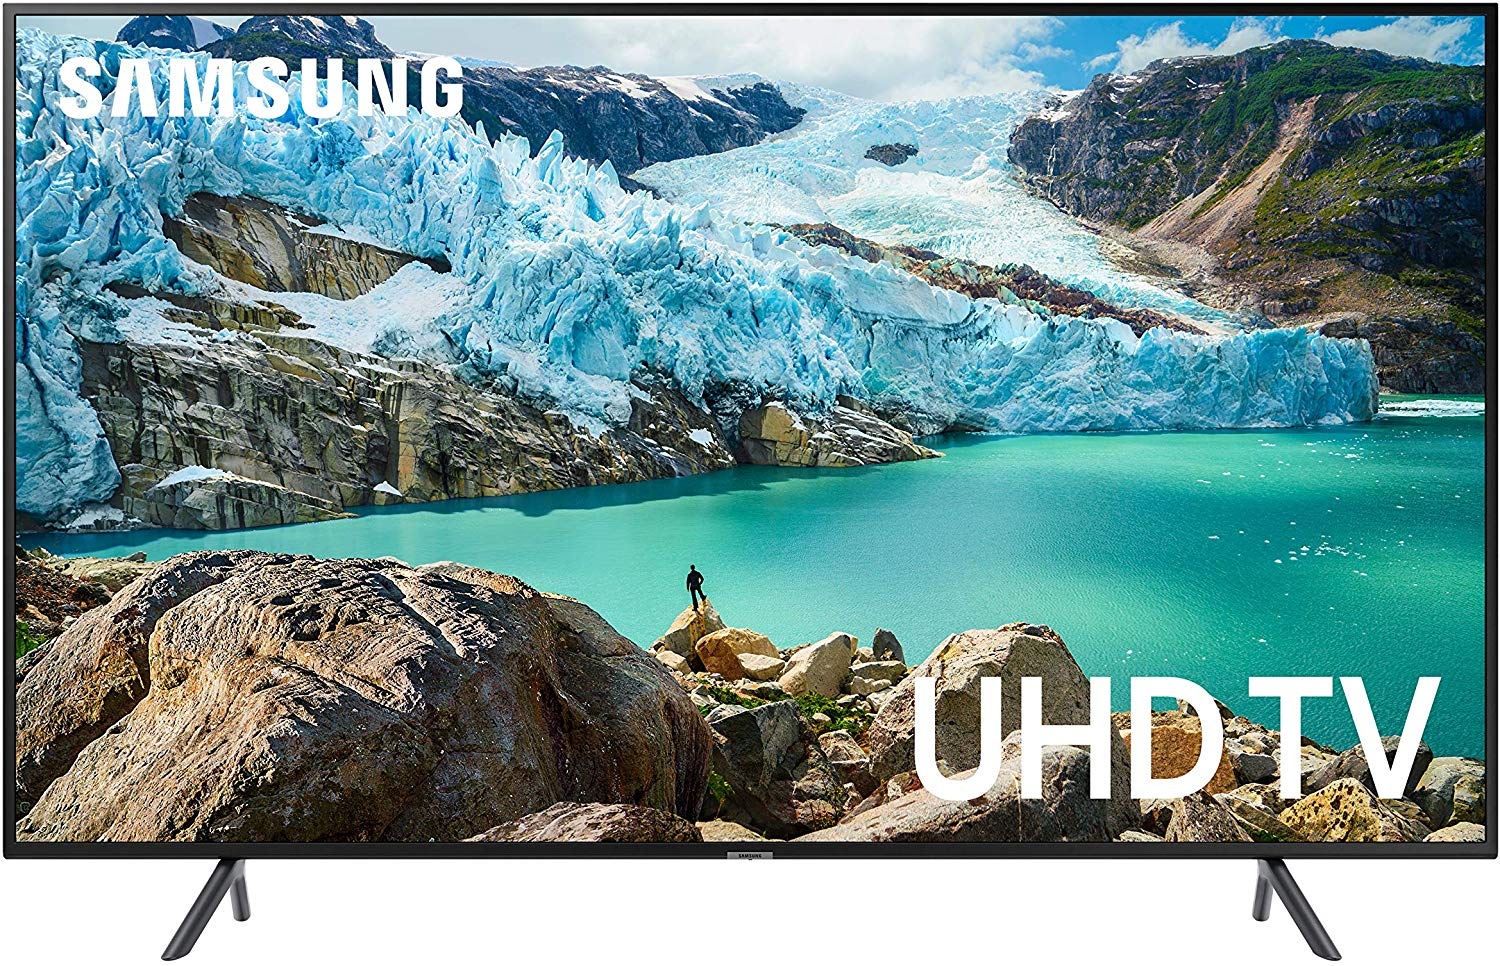 Samsung UN50RU7100FXZA Flat 50-Inch 4K UHD 7 Series Ultra HD Smart TV with HDR and Alexa Compatibility (2019 Model)